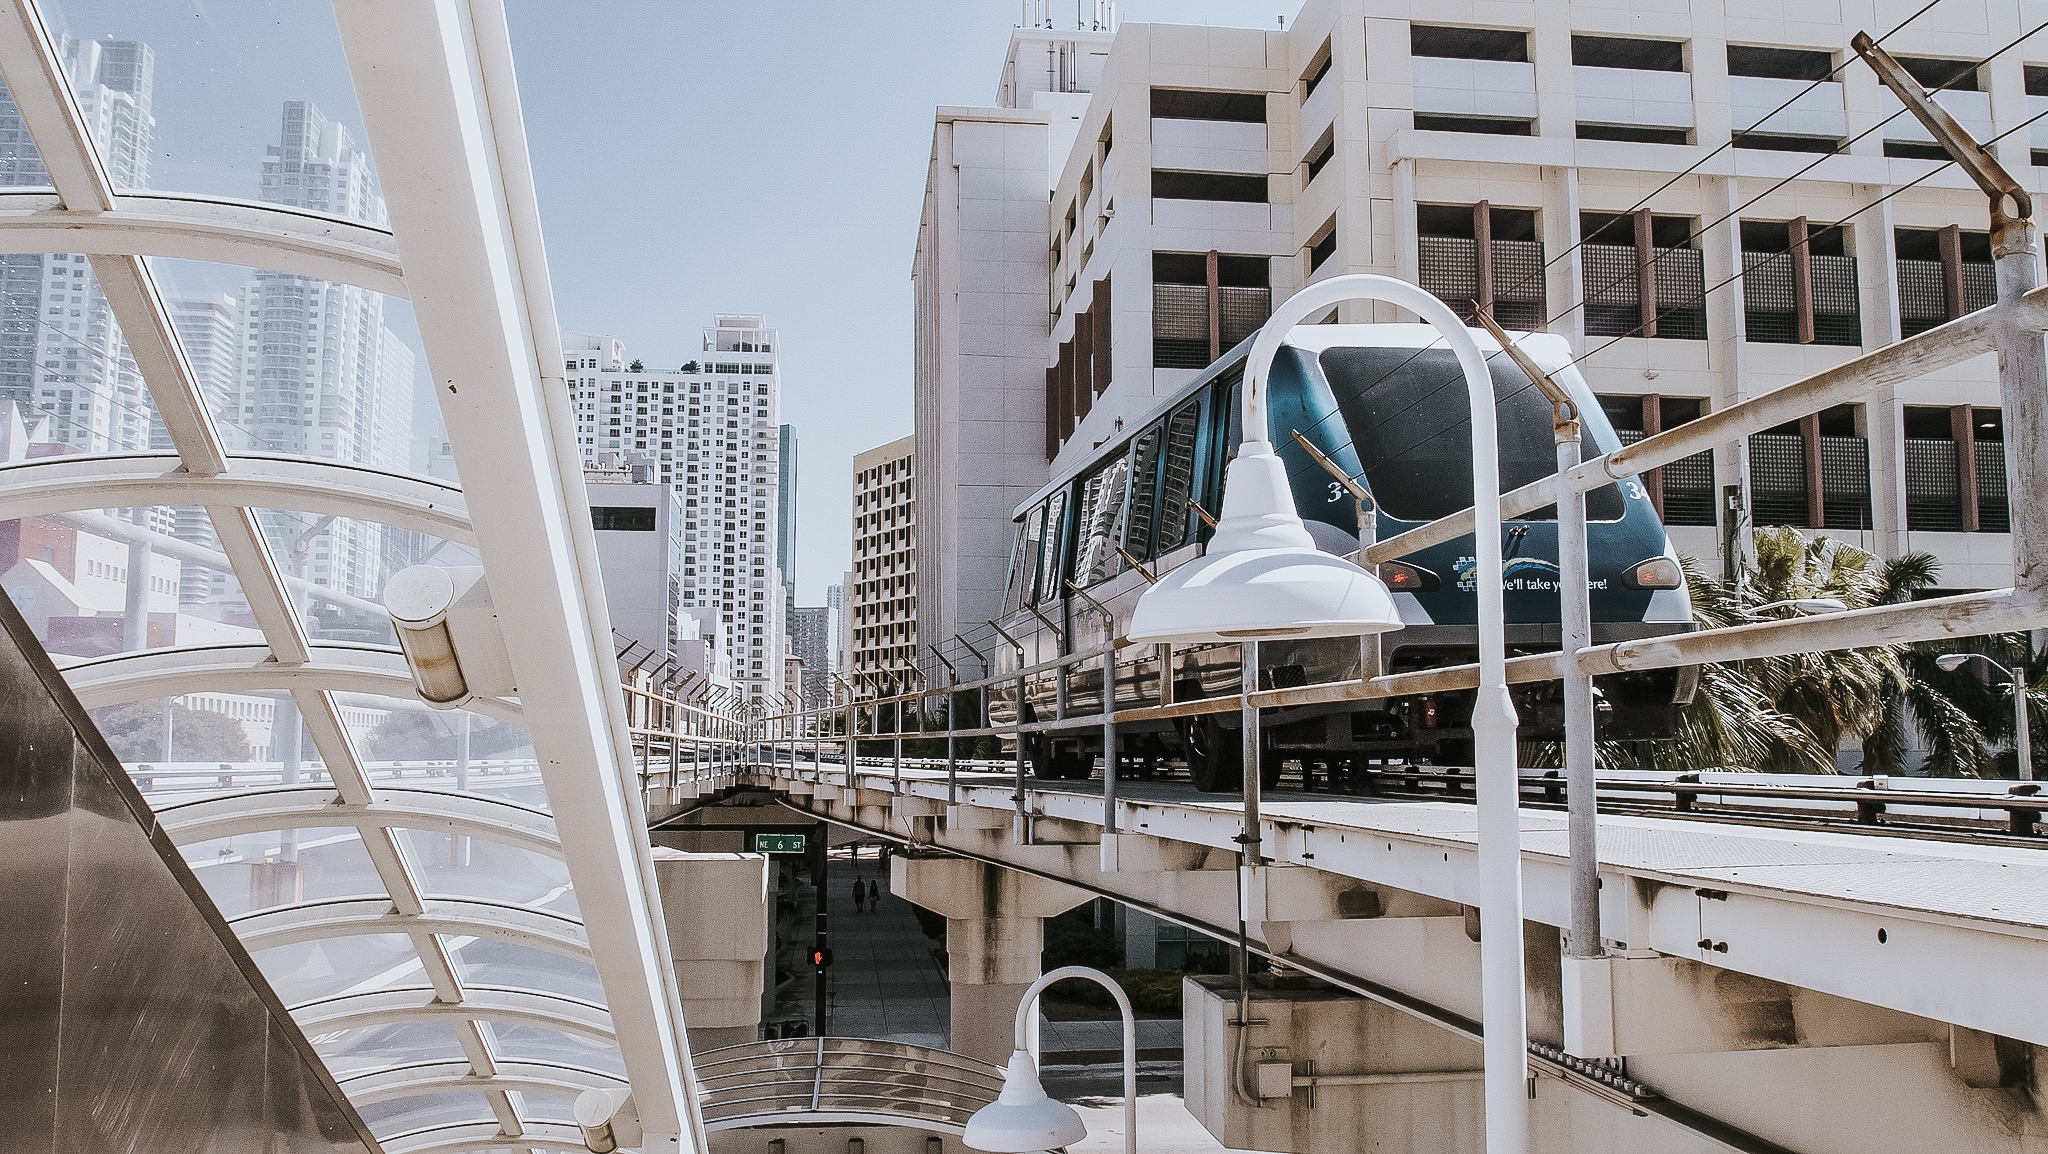 free things to do in Miami - ride the metromover